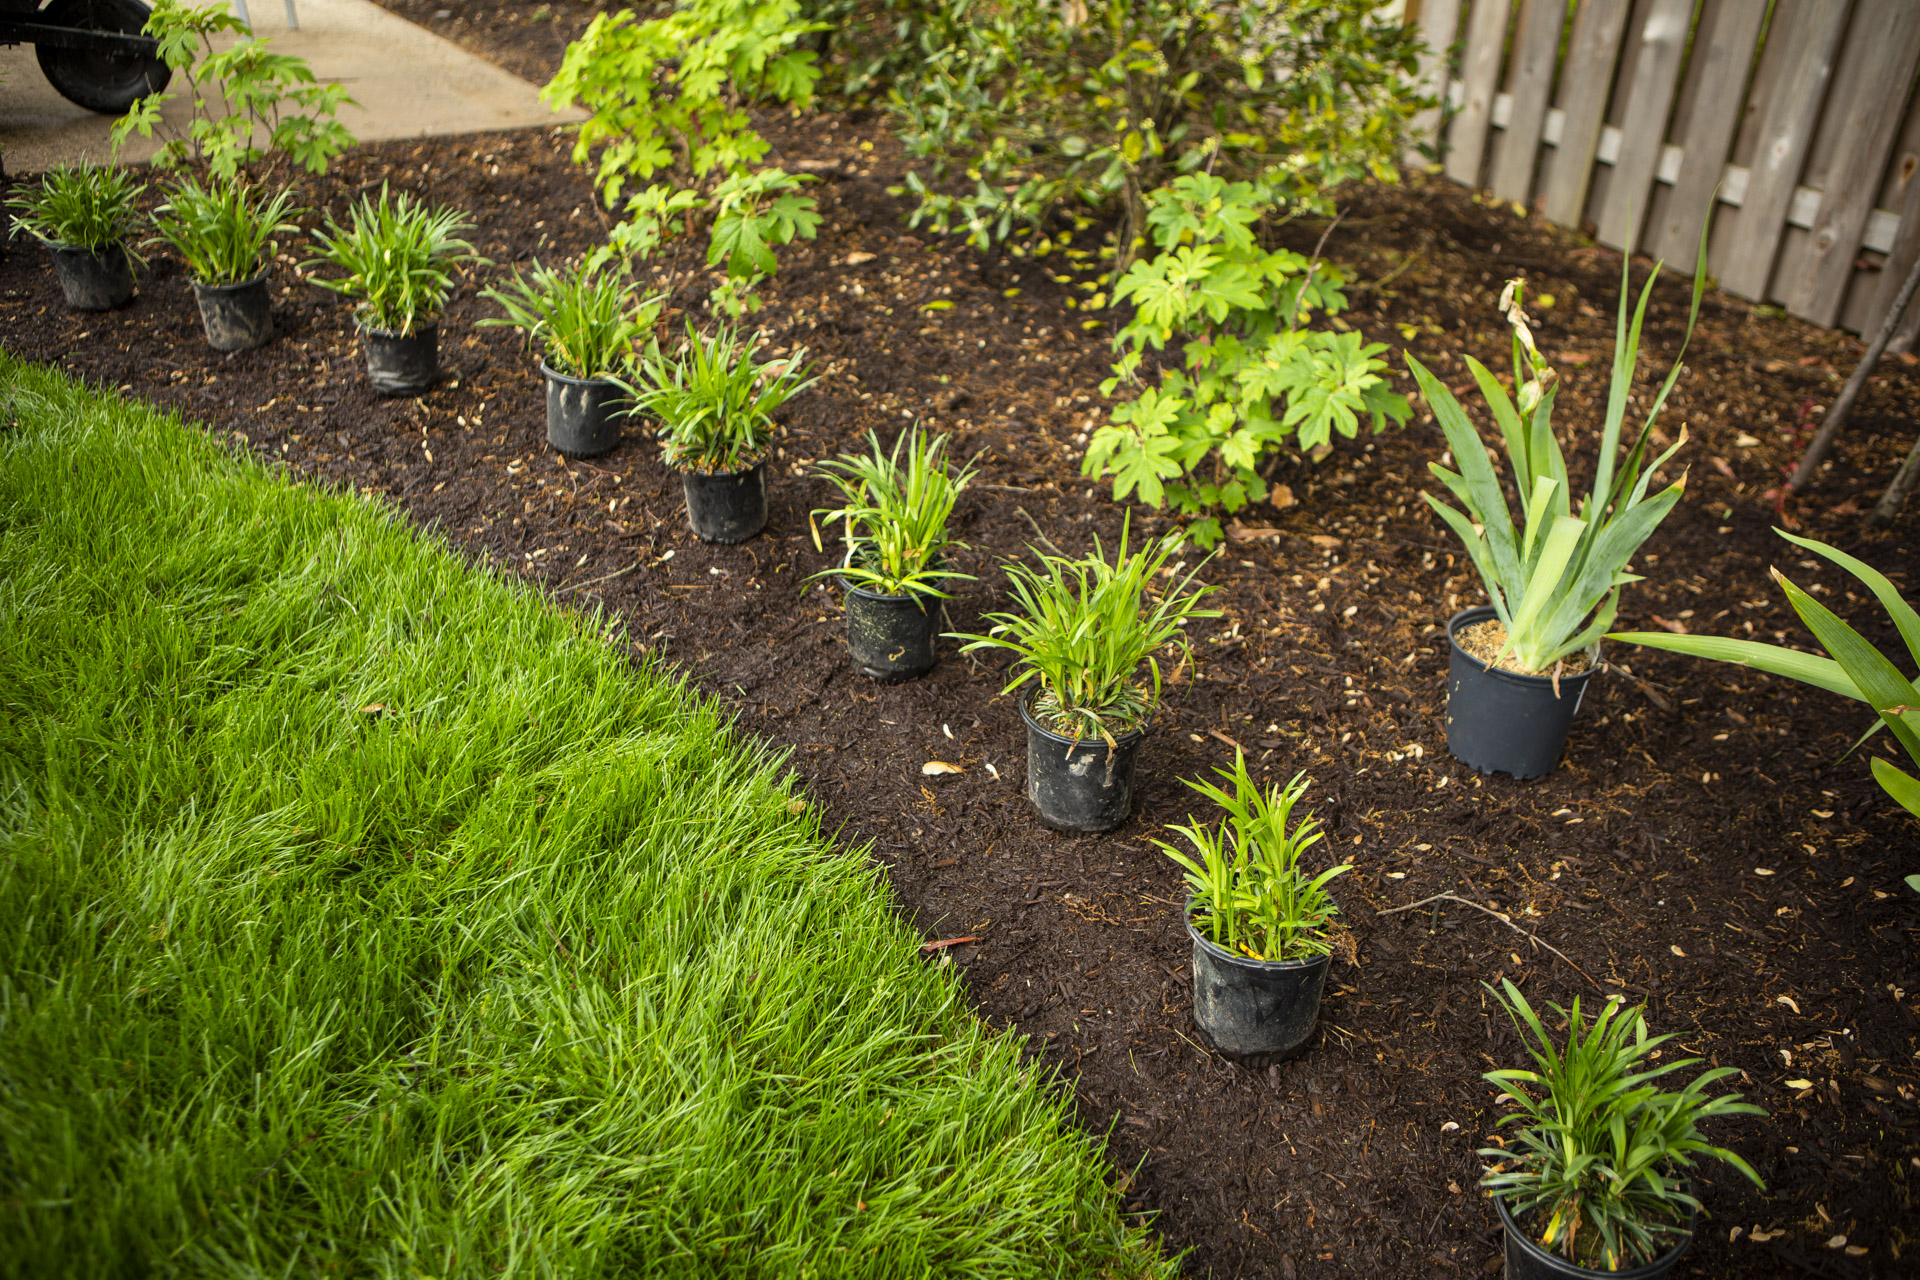 Planting Trees, Shrubs, & Flowers in the Summer: 4 Tips for Northern VA Homeowners